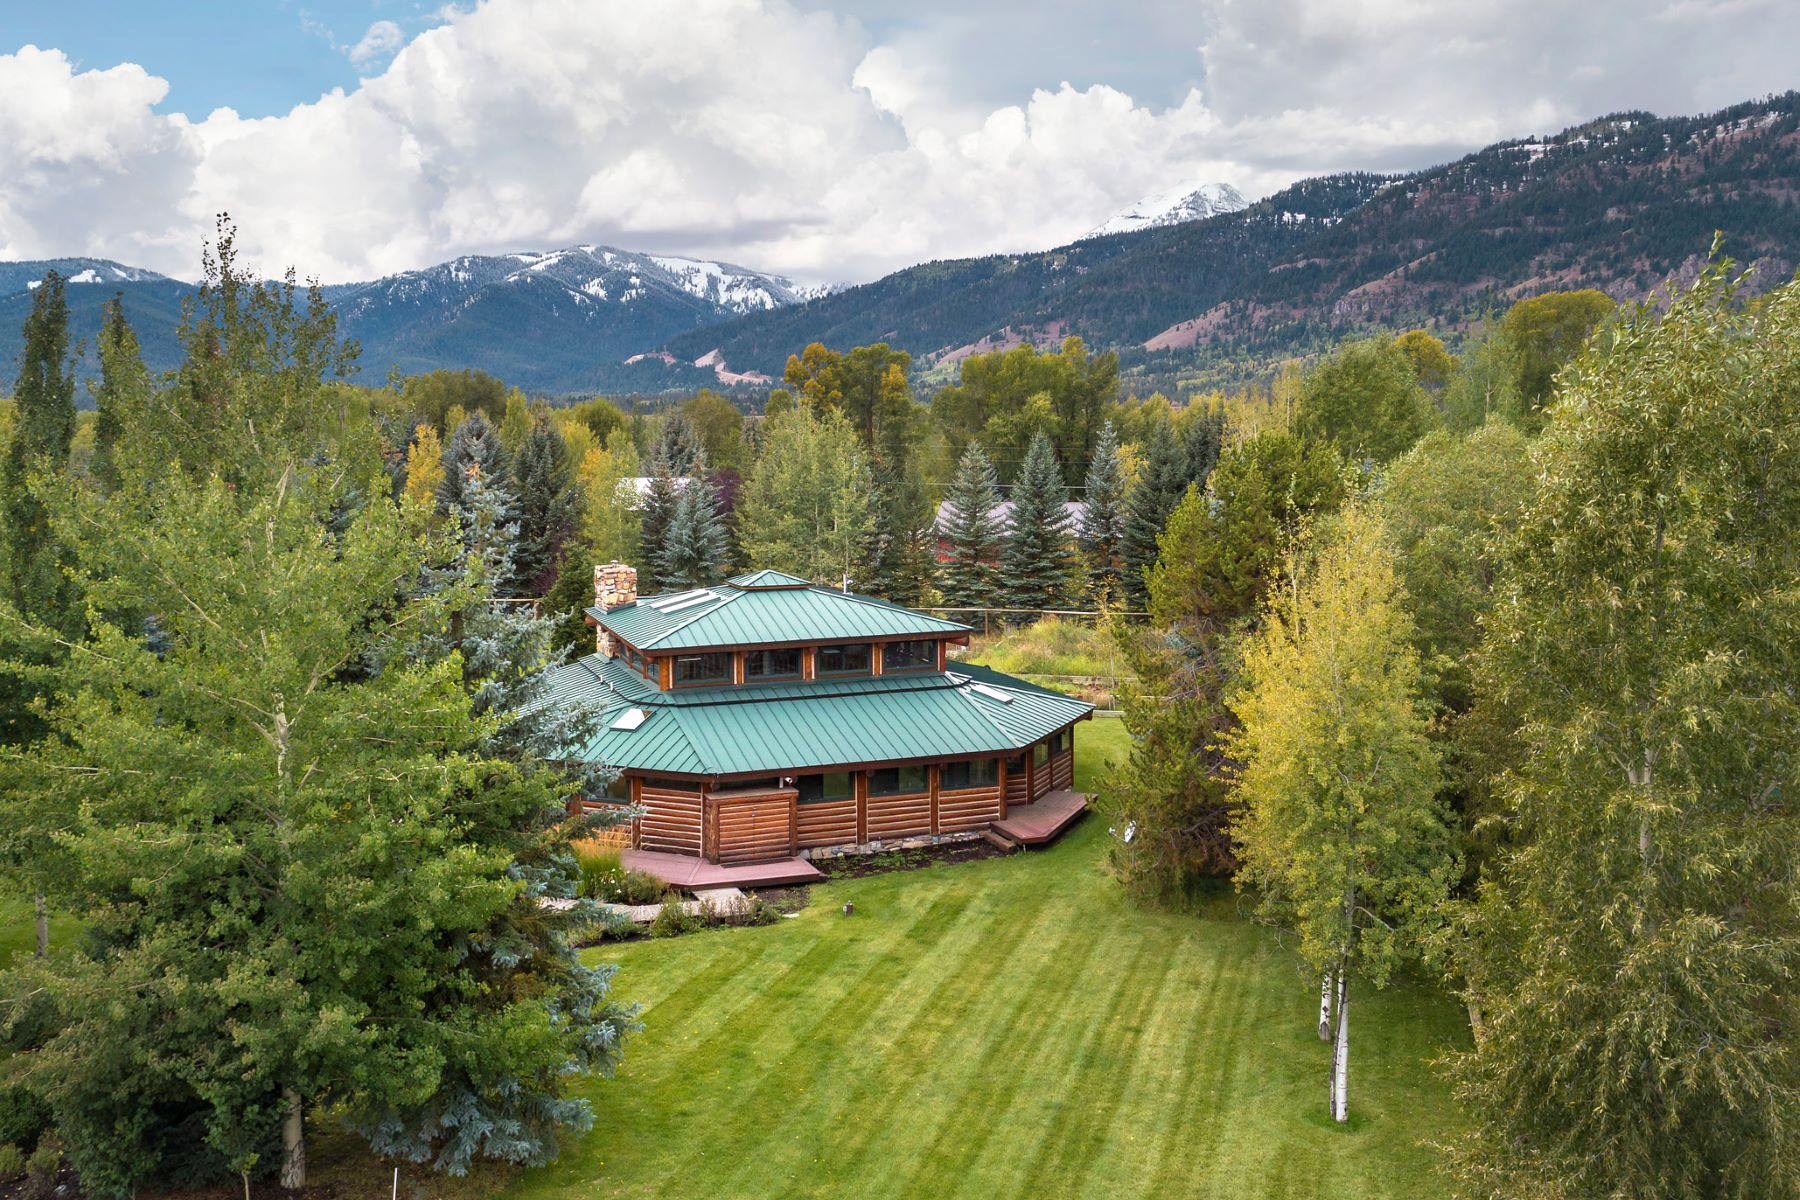 Single Family Home for Sale at Wilson Cabin with a Modern Twist 2095 Coyote Loop, Wilson, Wyoming, 83014 Jackson Hole, United States